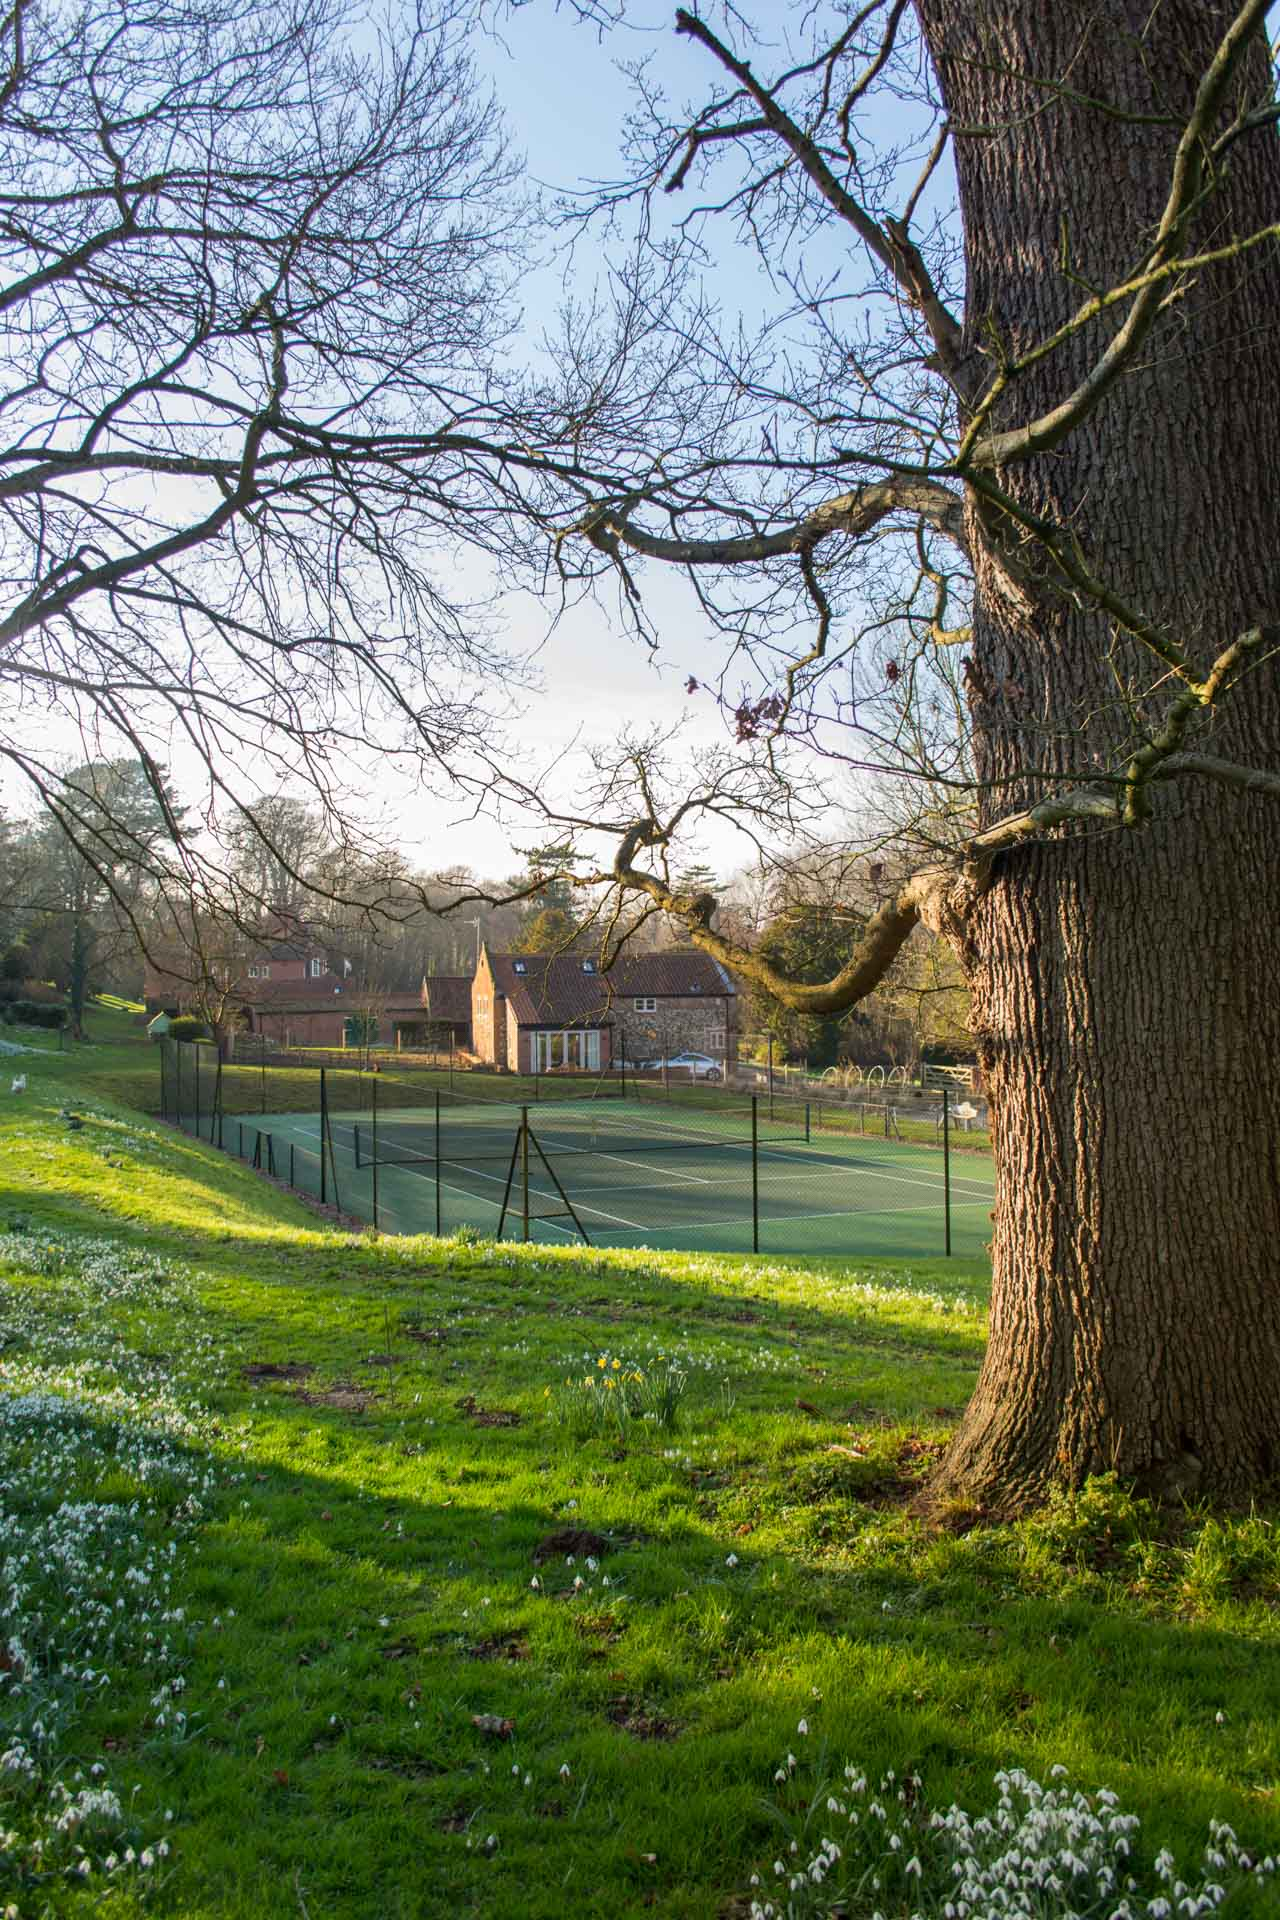 Long distance photo of the tennis court and Boathouse Barn from the woods.